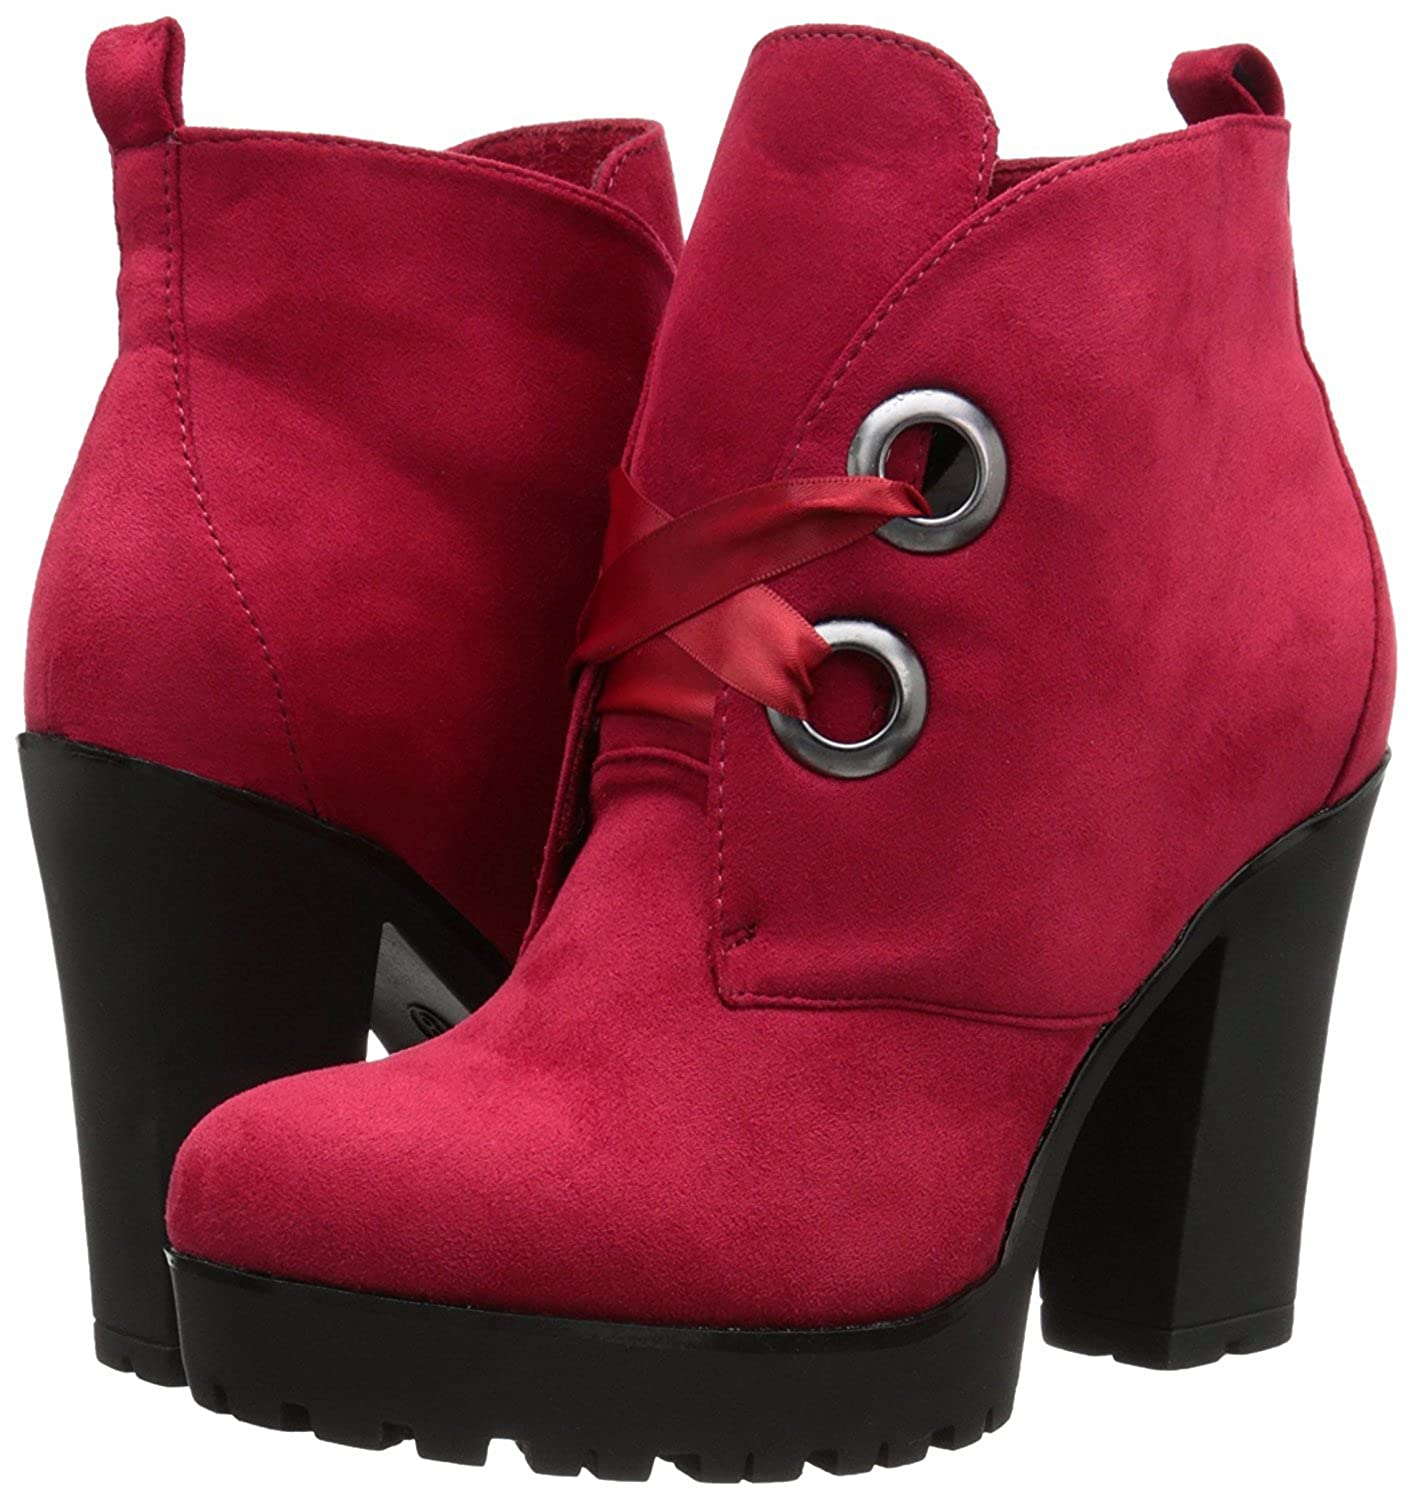 2 Lips Too Women's Too Access Boot 8 Red